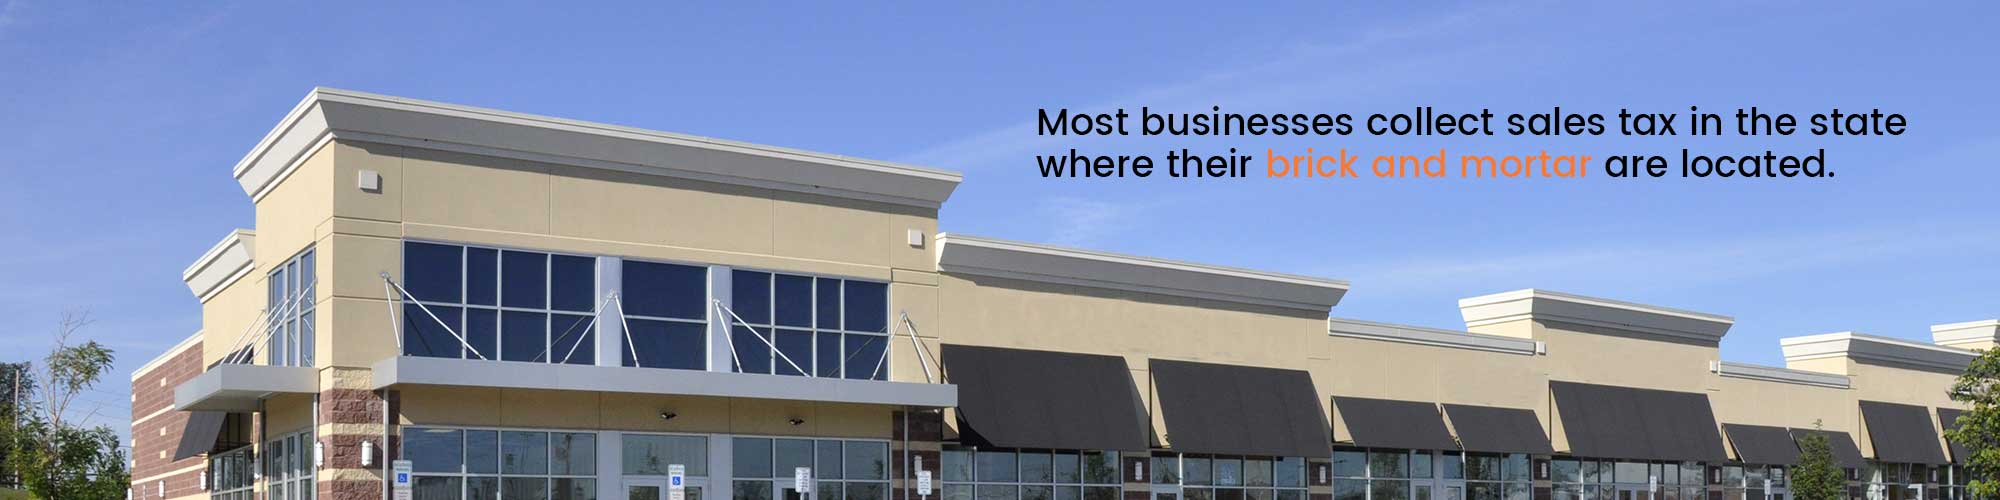 Most businesses collect sales tax in the state where their brick and mortar are located.